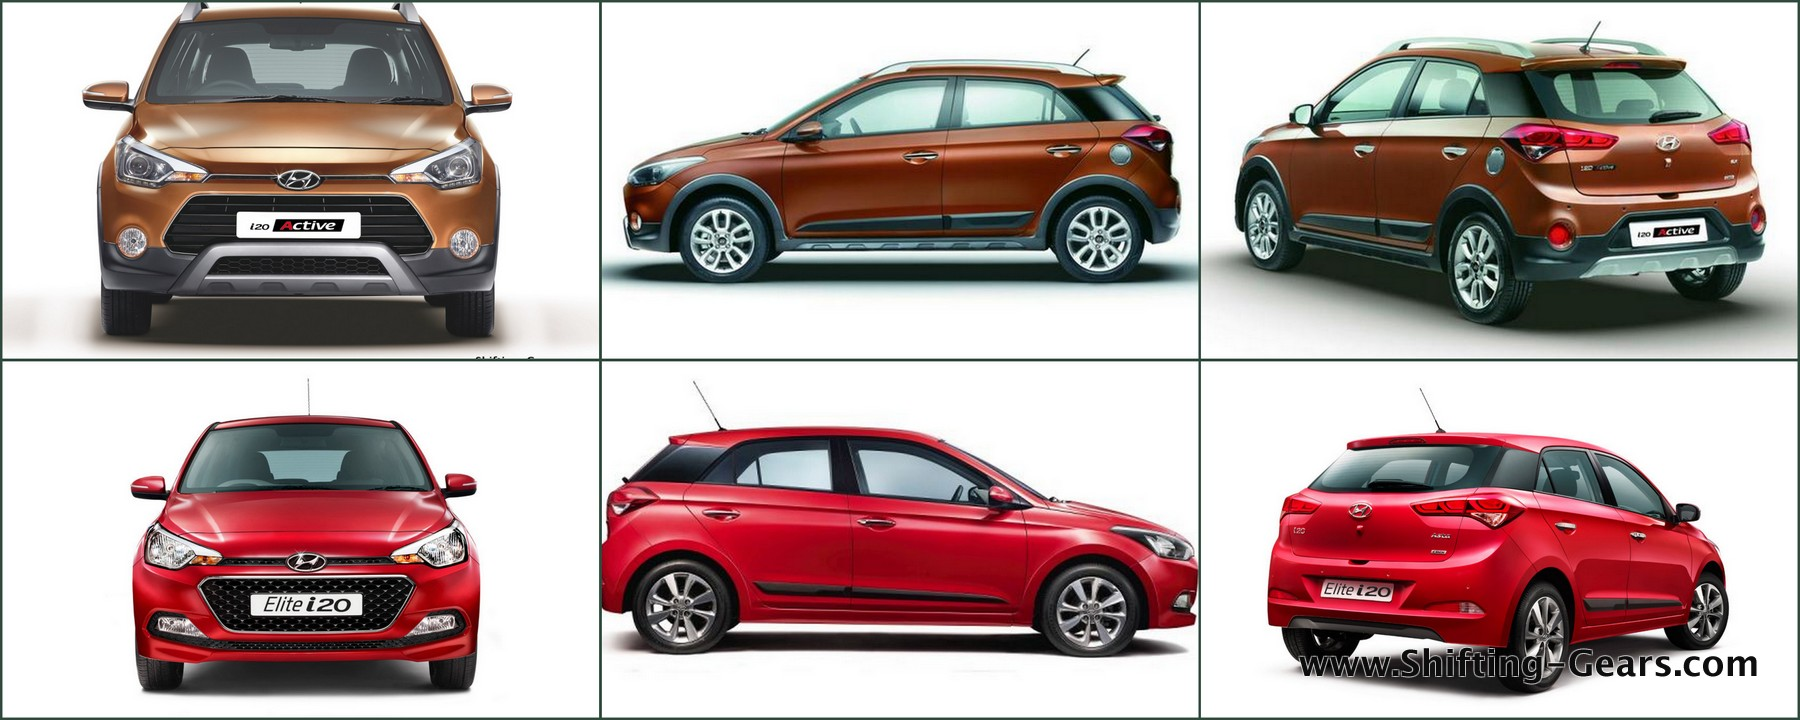 hyundai i20 active review shifting gears. Black Bedroom Furniture Sets. Home Design Ideas